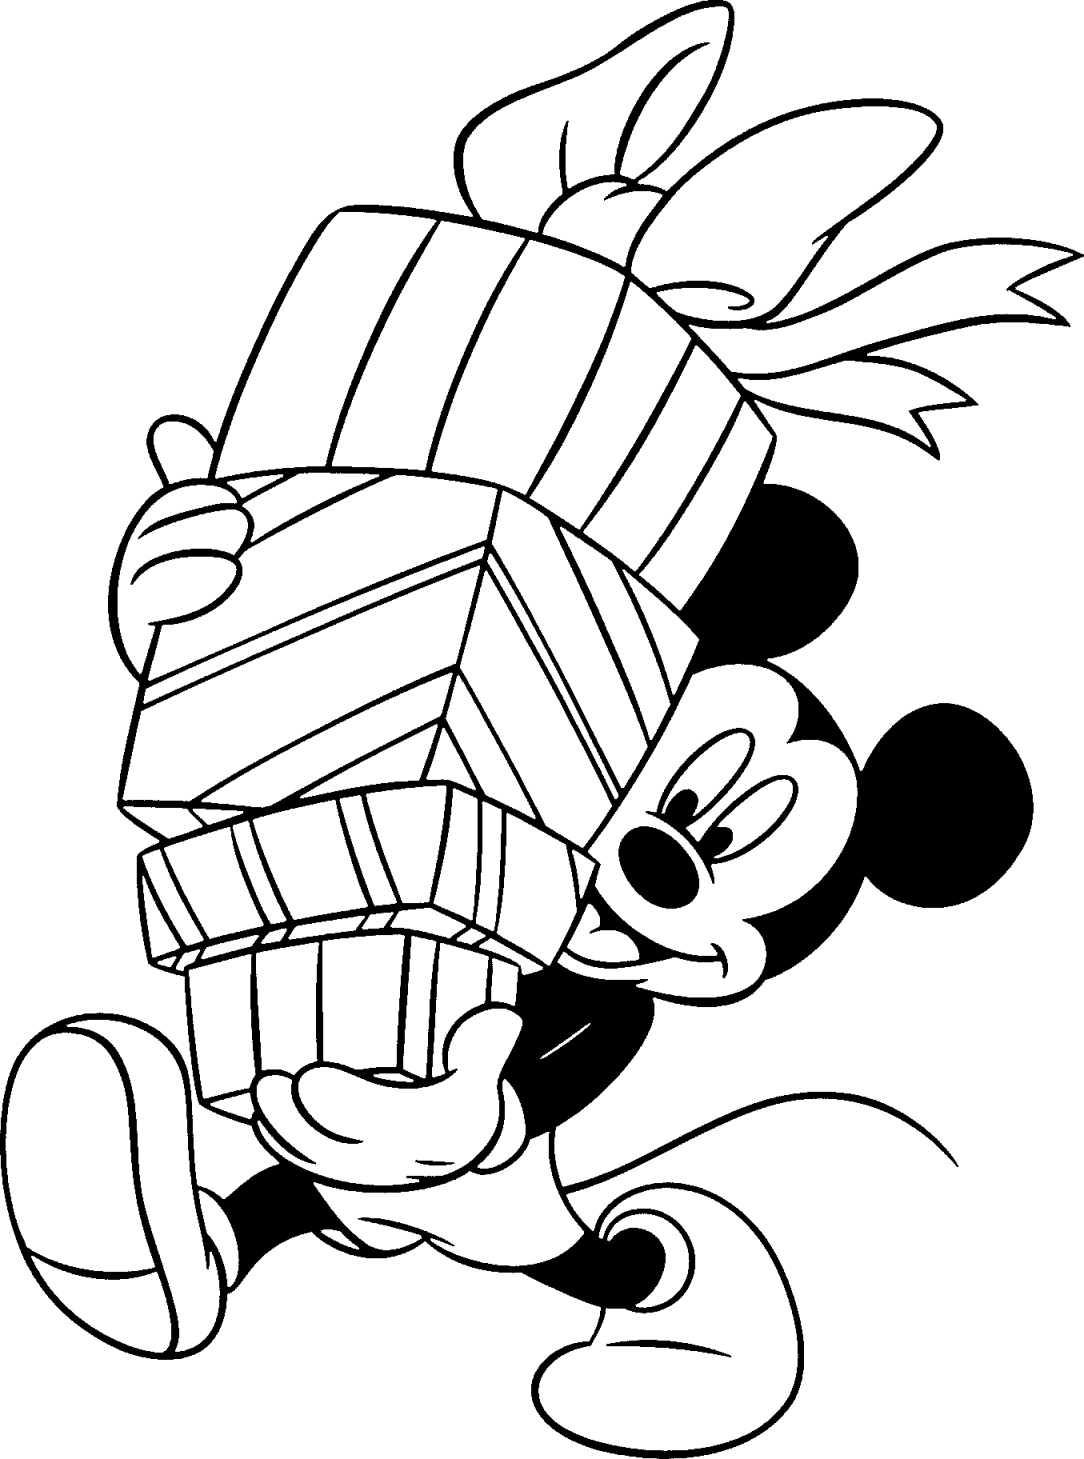 free mickey mouse coloring pages - 774